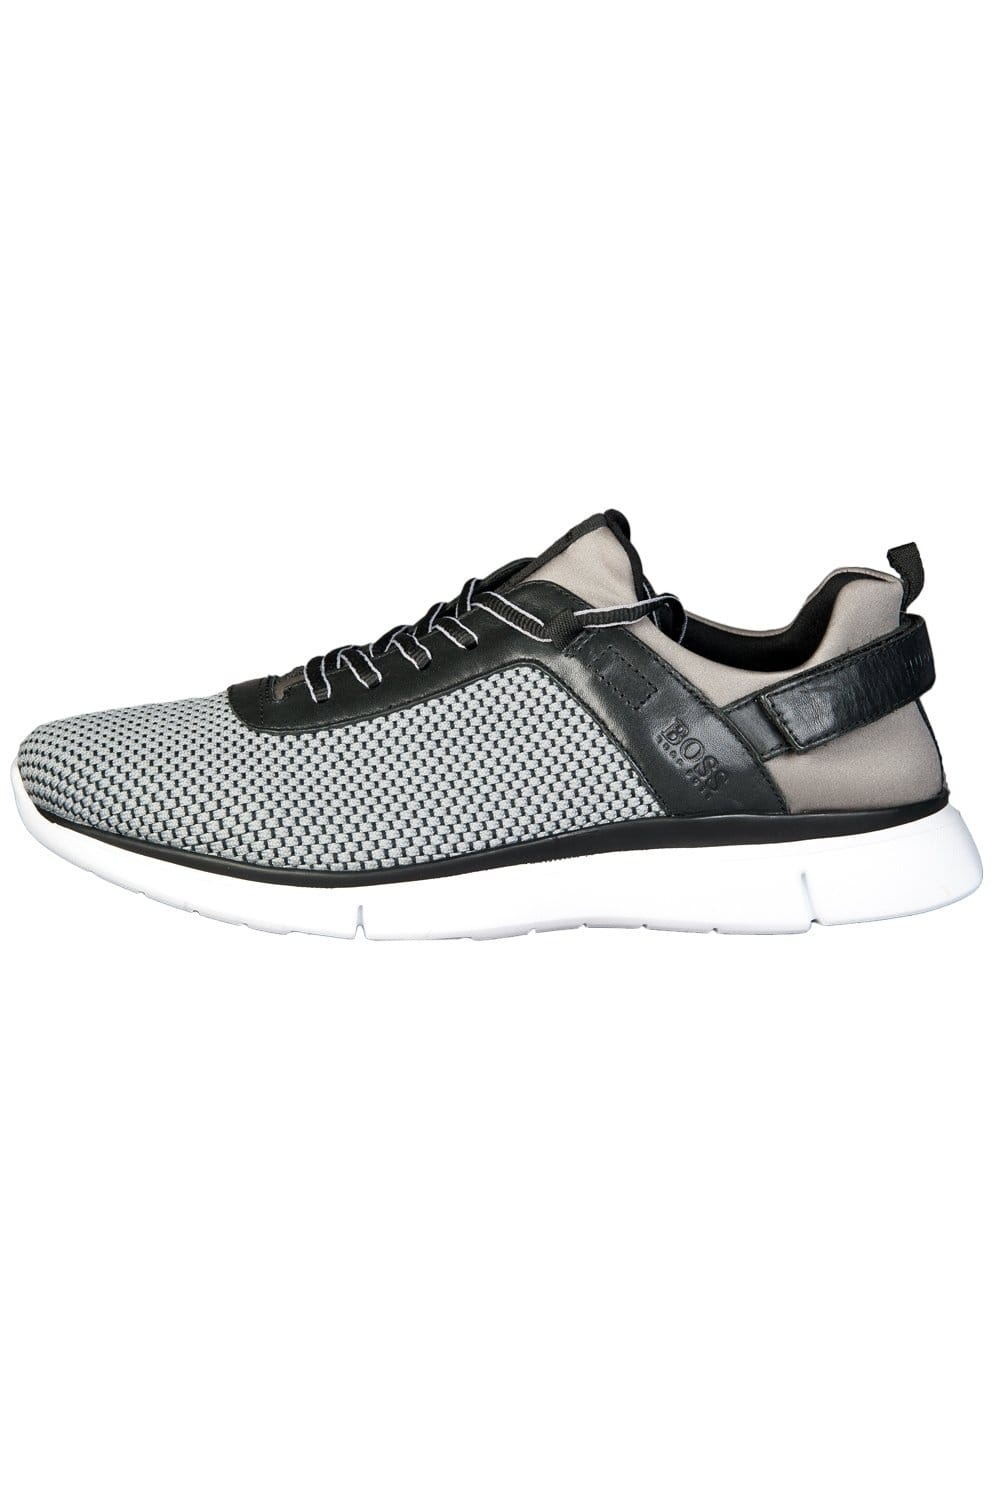 hugo boss green designer sneakers in black and grey gym twist 50286019 boss green from sage. Black Bedroom Furniture Sets. Home Design Ideas